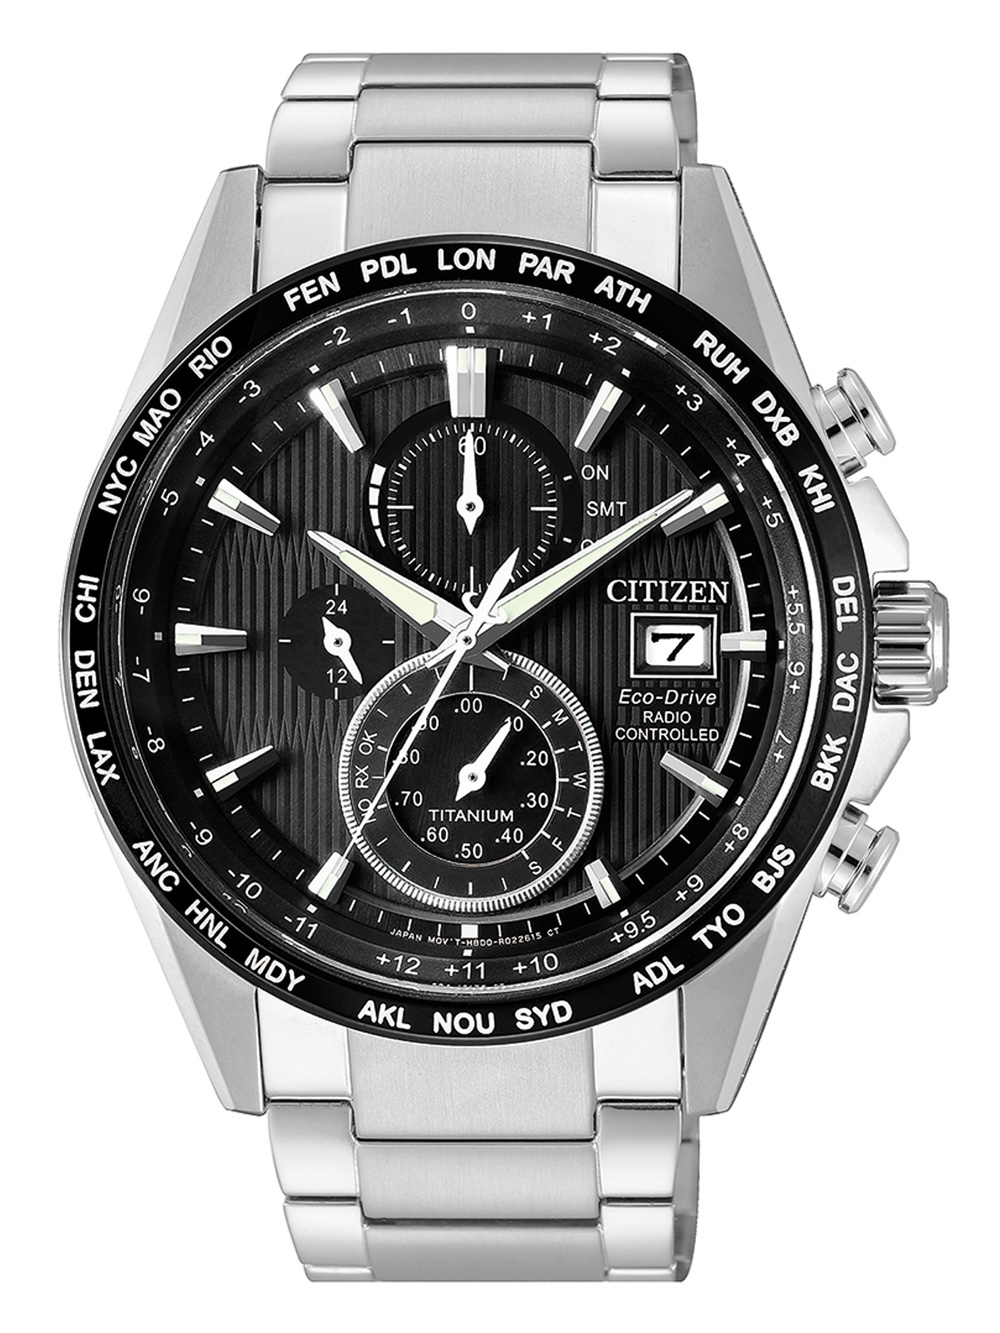 AT8154-82E Eco Drive Chronograph 42mm 10ATM